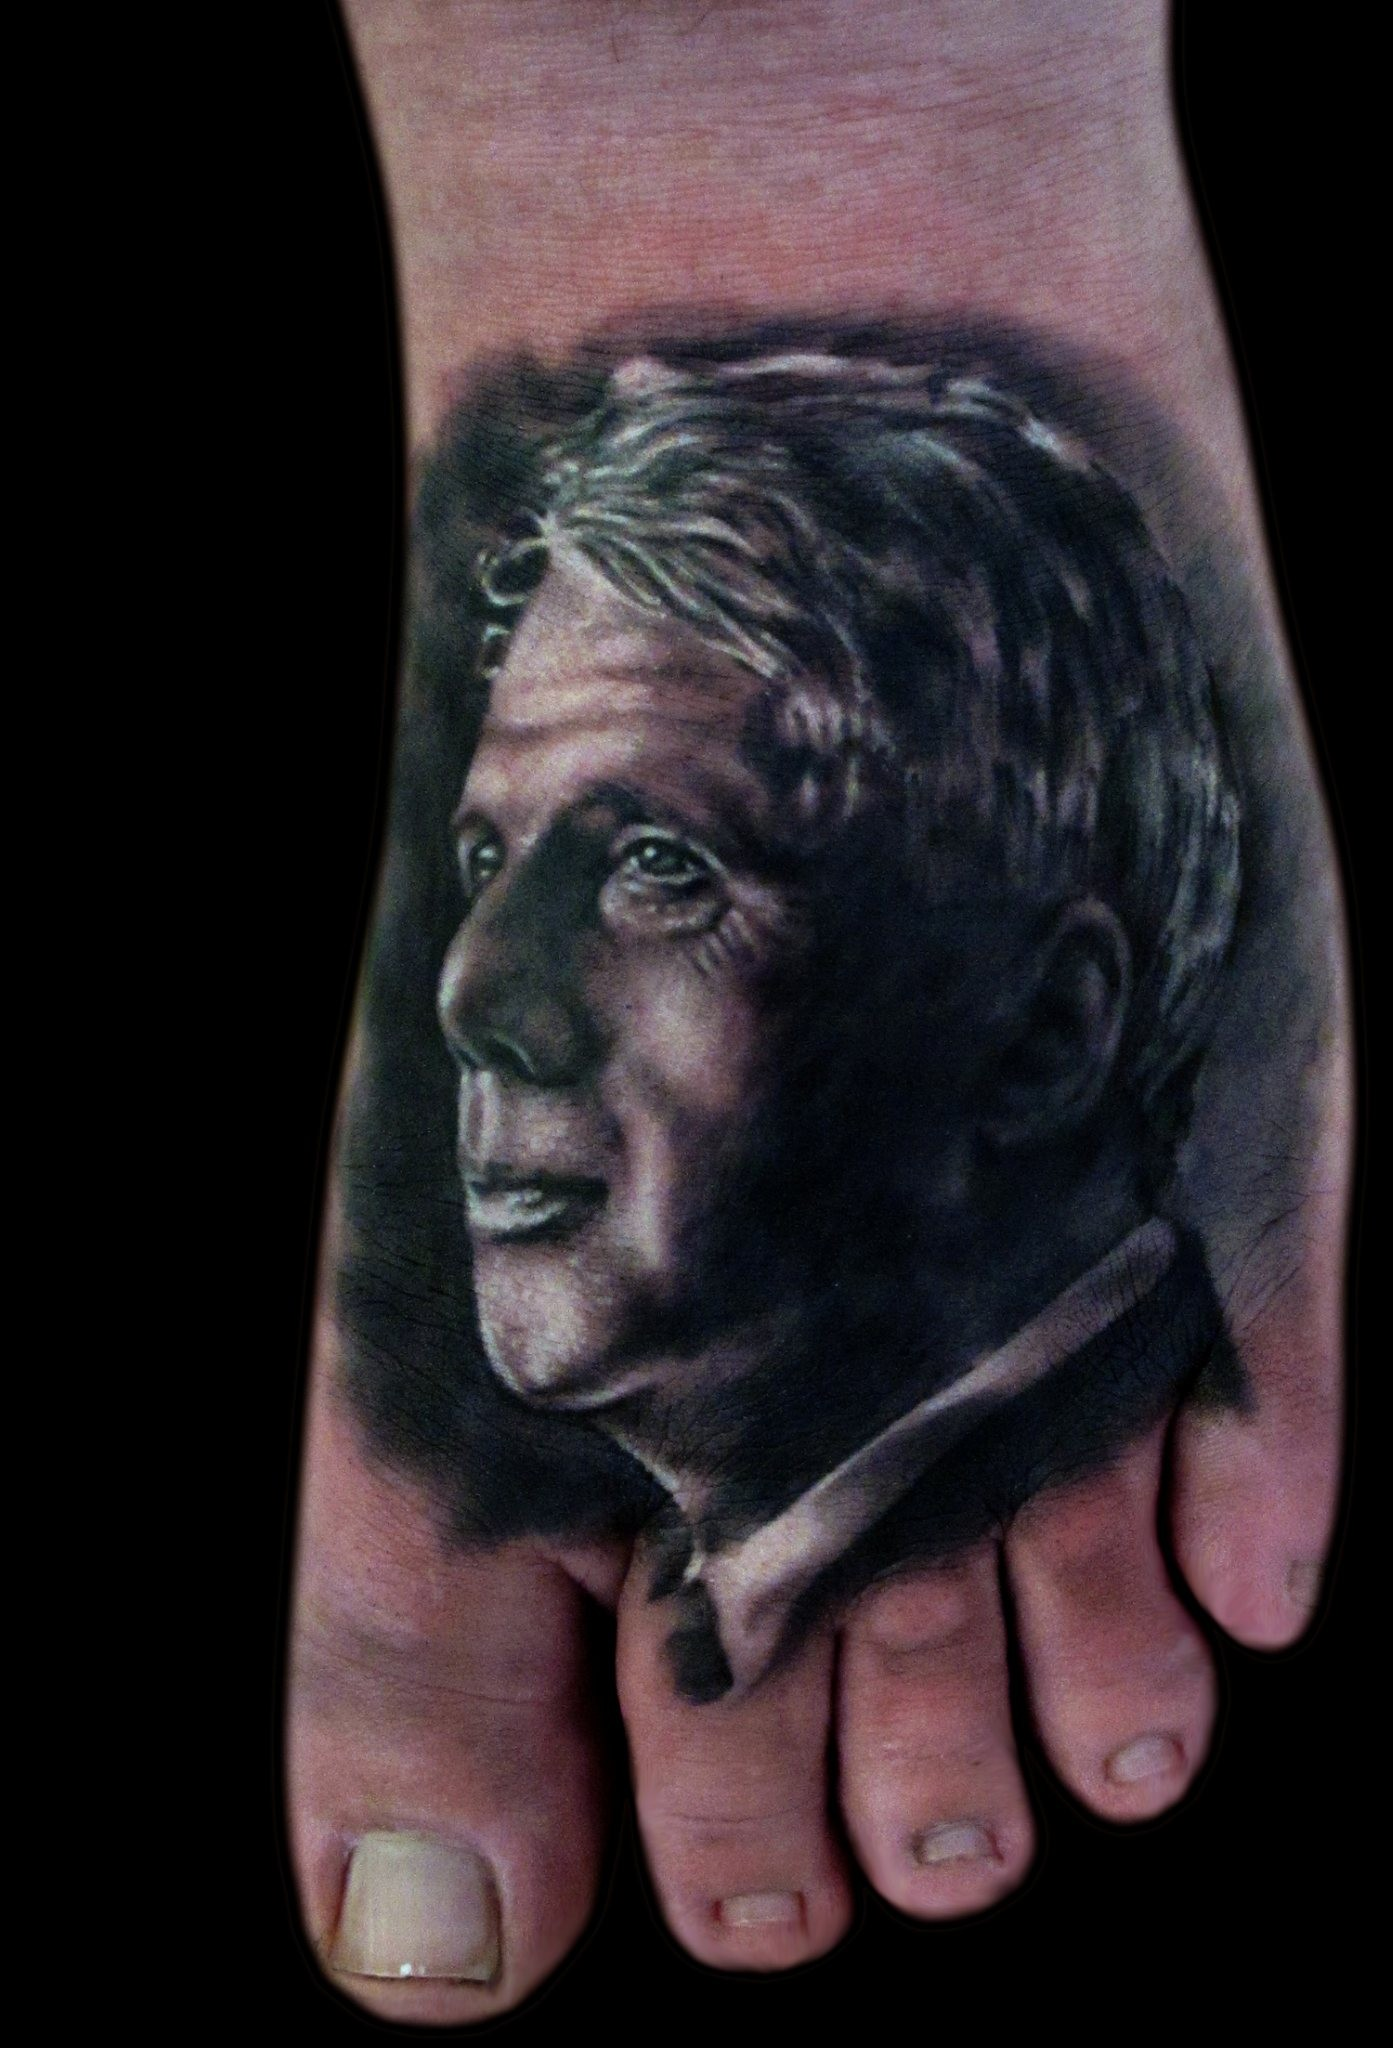 Robert Frost Realistic Portrait Black & Grey Tattoo Liz Cook Dallas Texas 300res.jpg